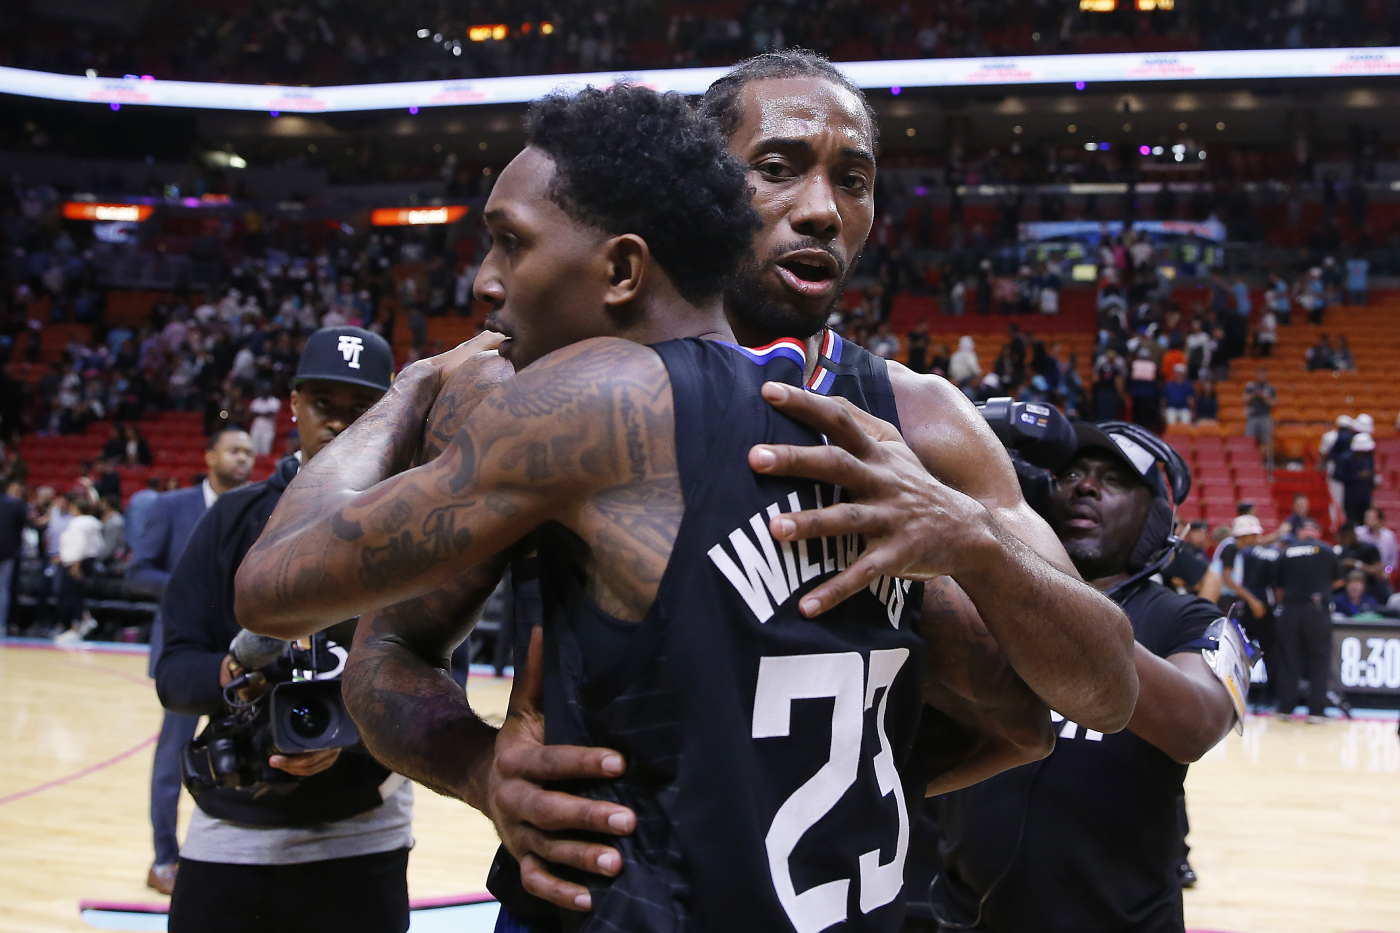 The LA Clippers have already lost Montrezl Harrell. Now, they could trade away their $8 million man, Lou Williams.